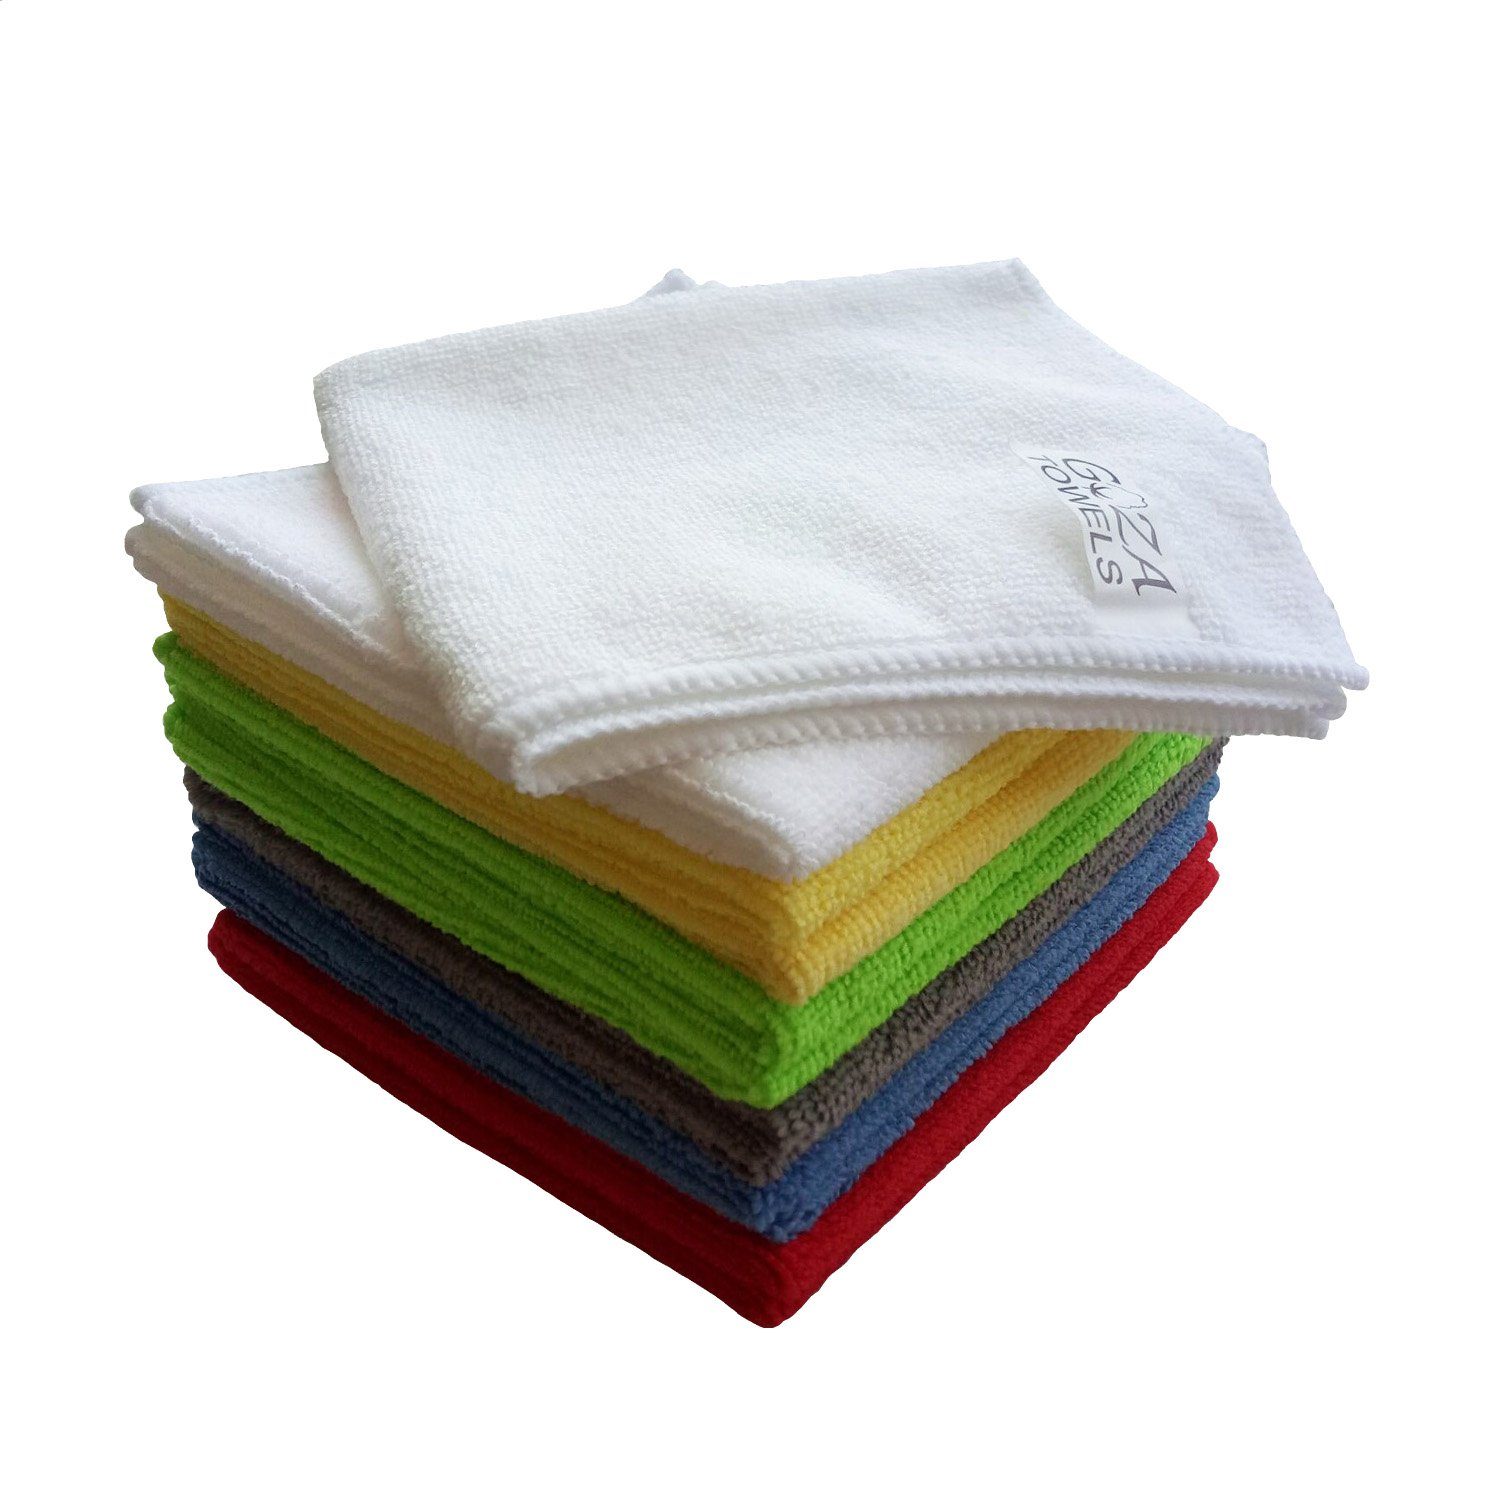 Goza Towels Microfiber Towel Cleaning Cloths Professional Grade All-Purpose 12